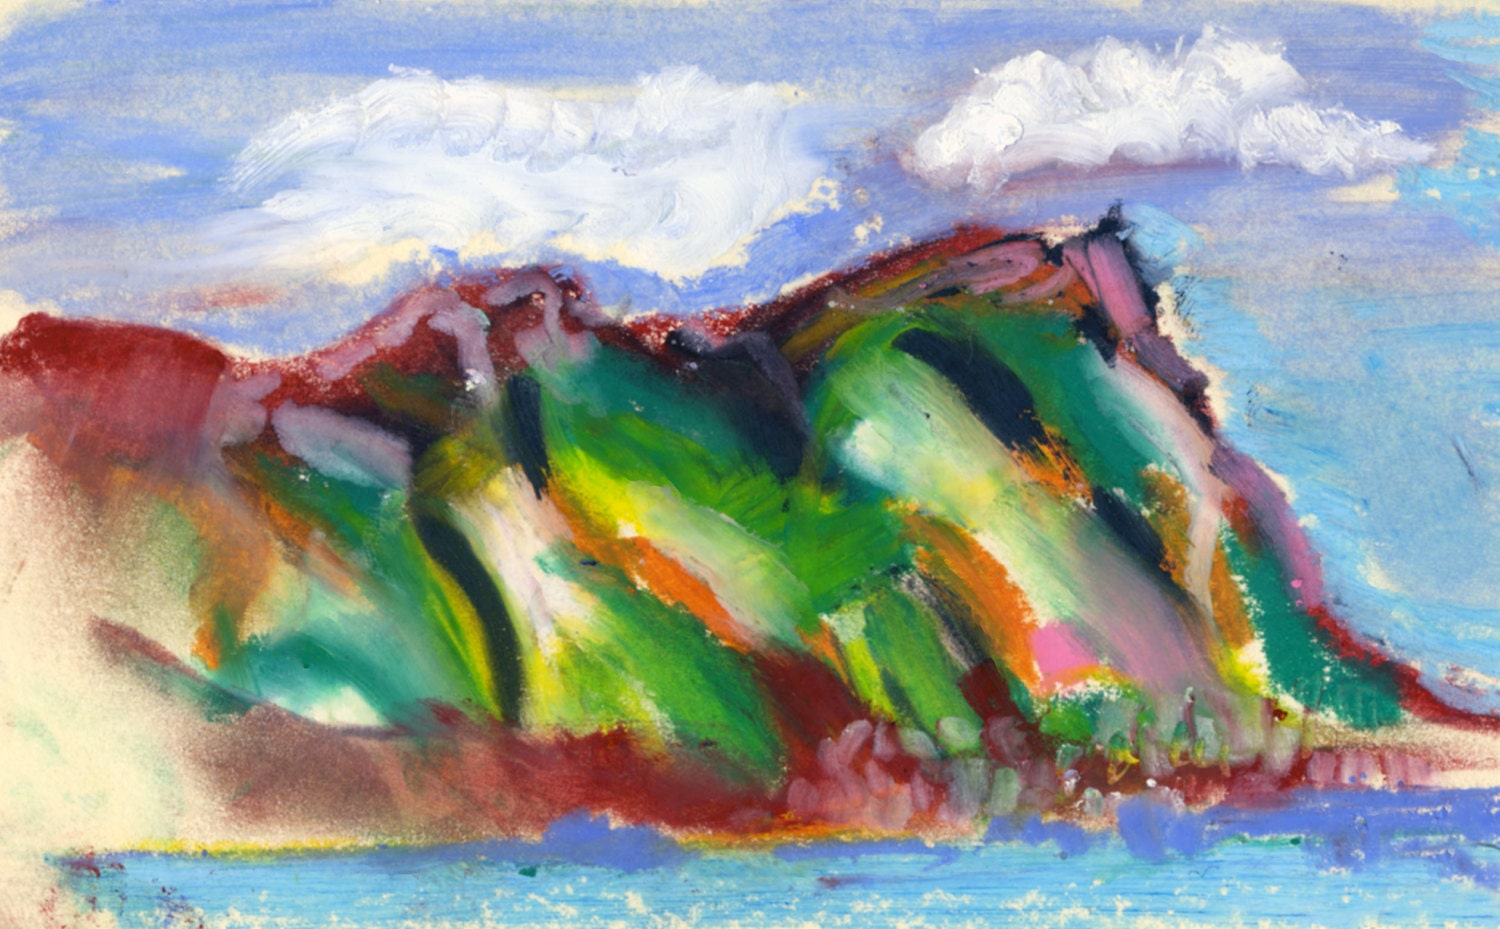 Wild Clouds flying over False Bay Mountain to the sea - vibrant Oil Pastel drawing. Limited Edition print one of only 25 - artsdesireable